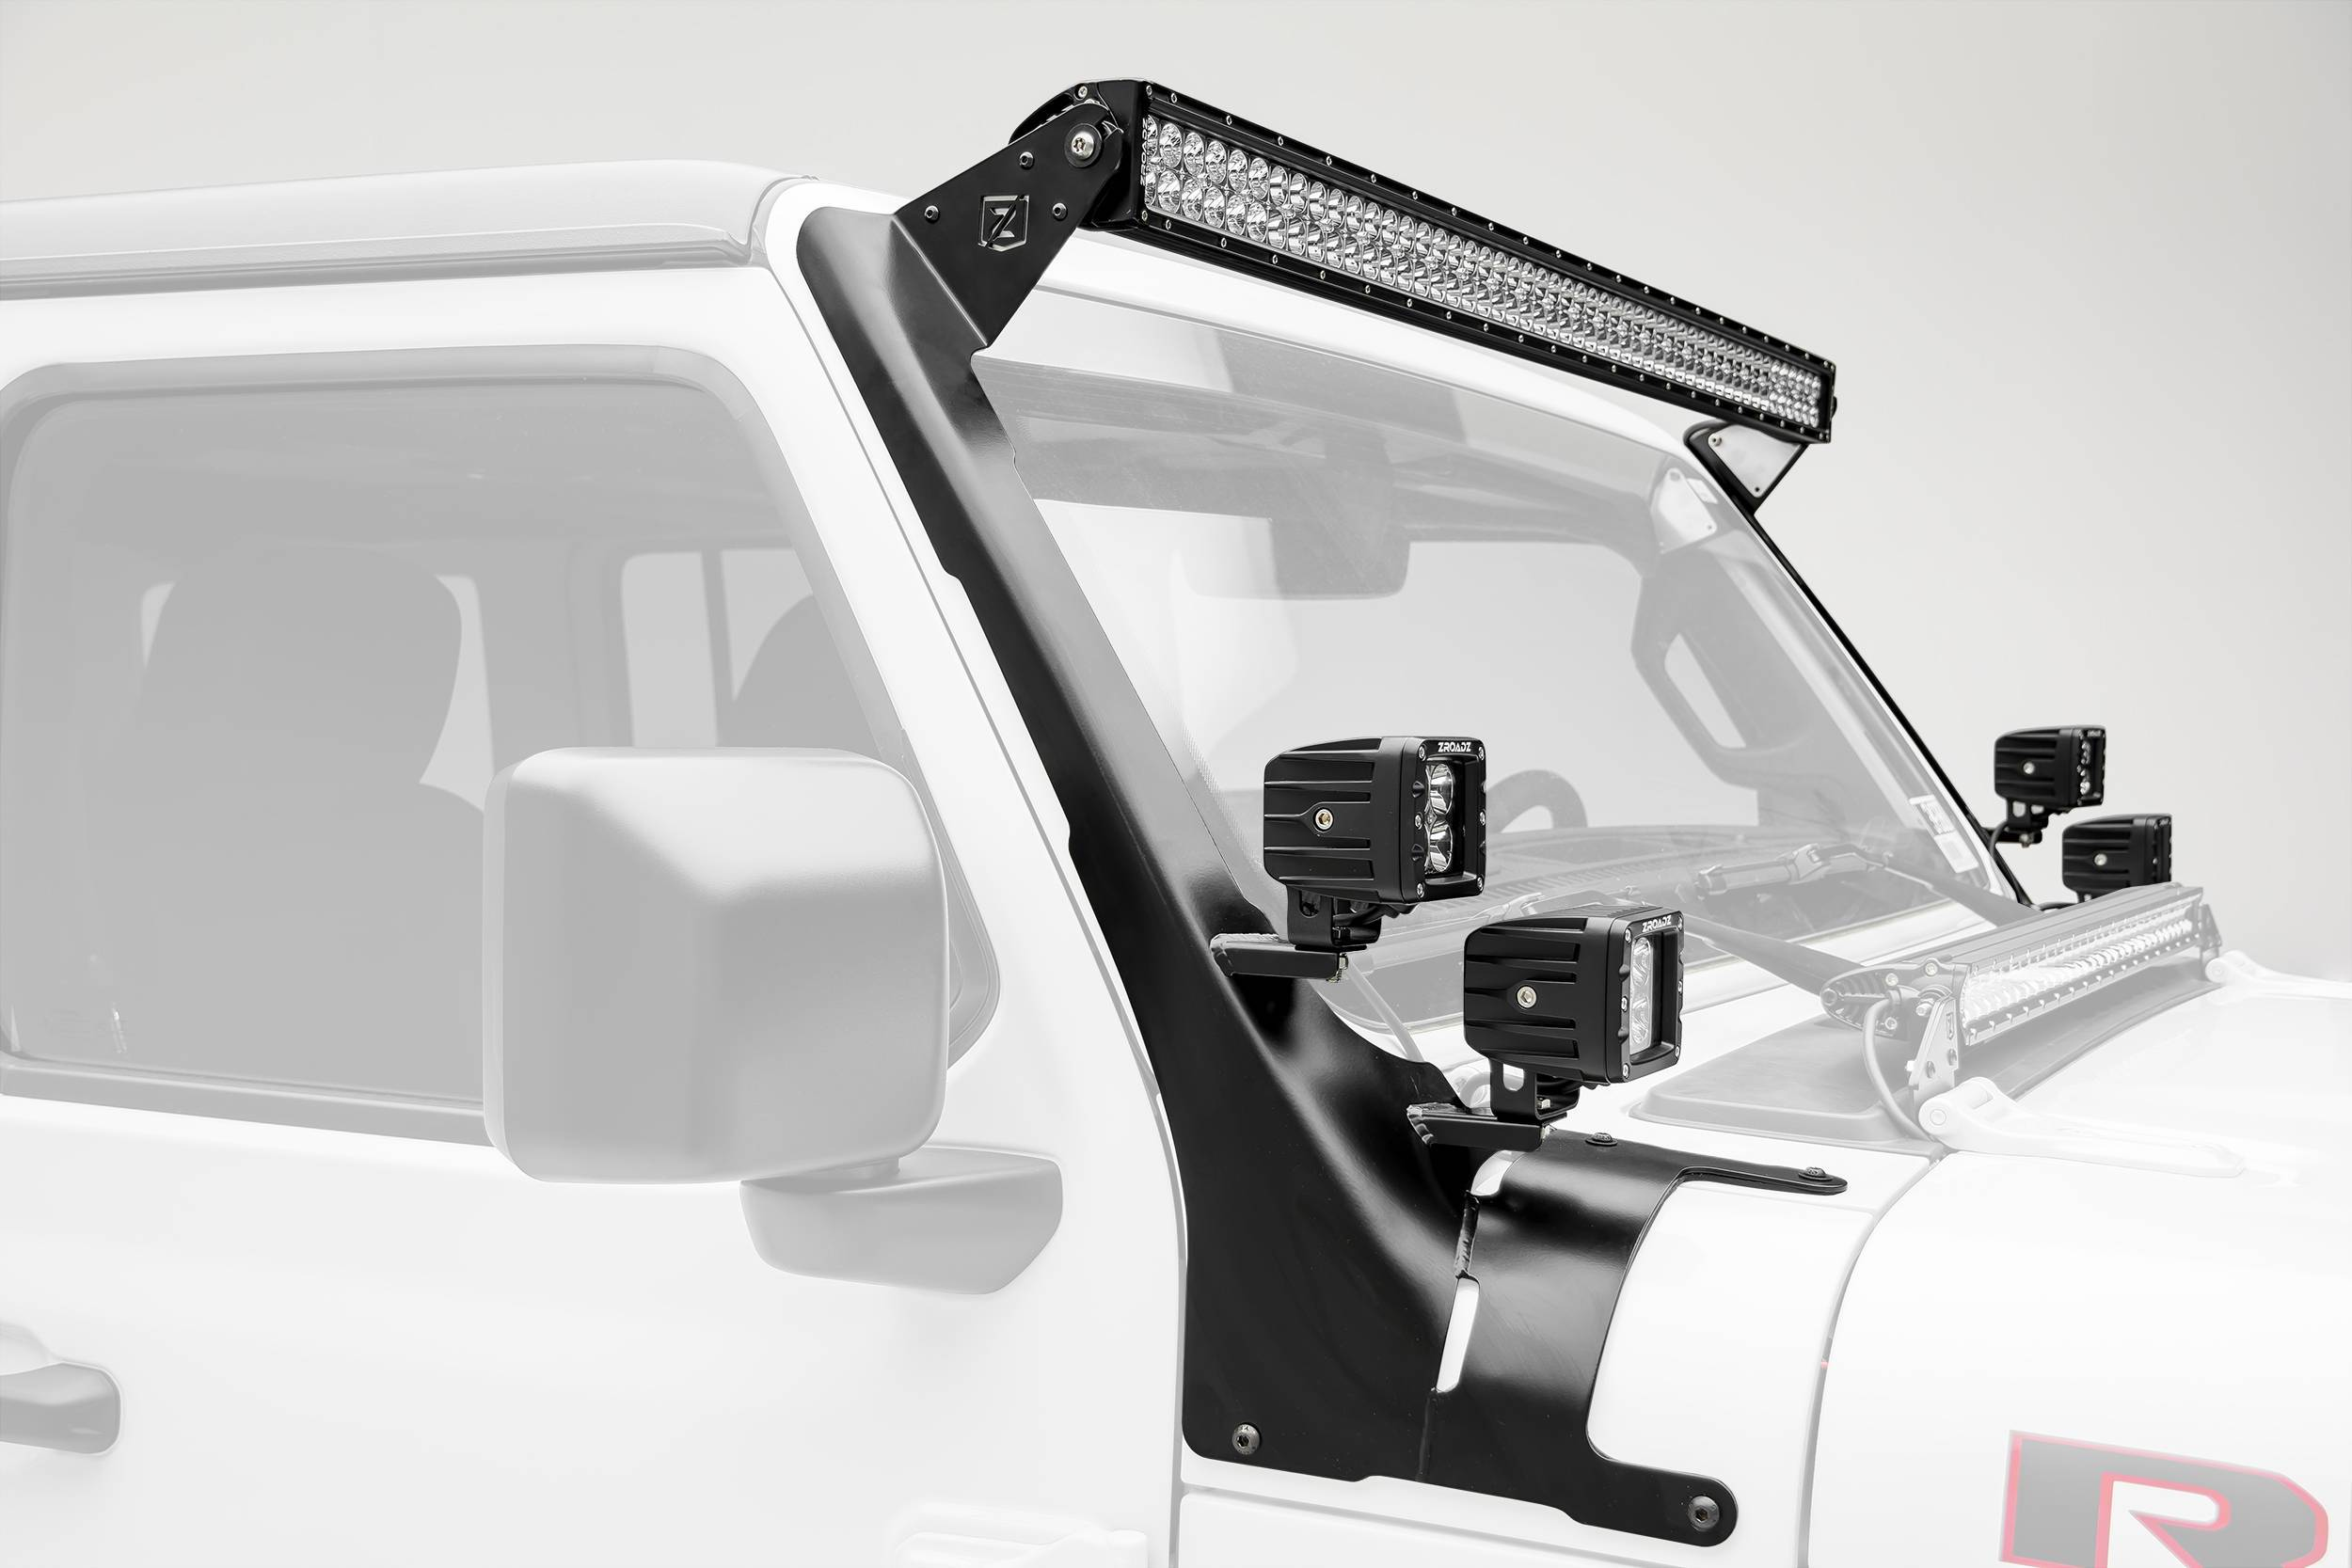 ZROADZ - Jeep JL, Gladiator Front Roof LED Bracket to mount (1) 50 or 52 Inch Straight LED Light Bar and (4) 3 Inch LED Pod Lights - PN #Z374831-BK4